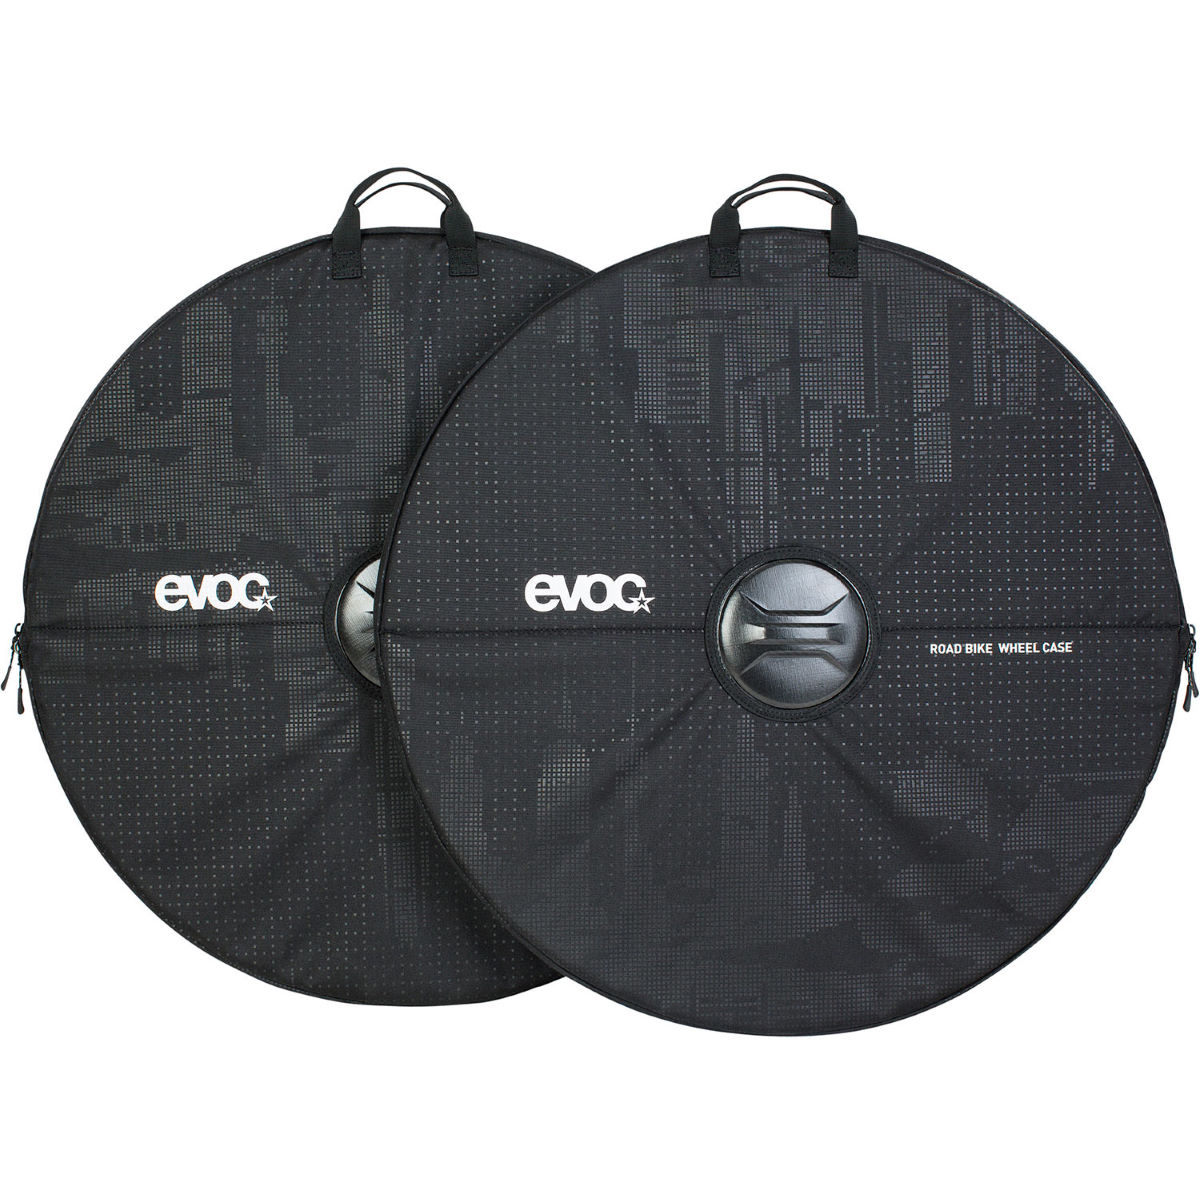 Evoc Road Bike Wheel Case - Bolsas portabicicletas